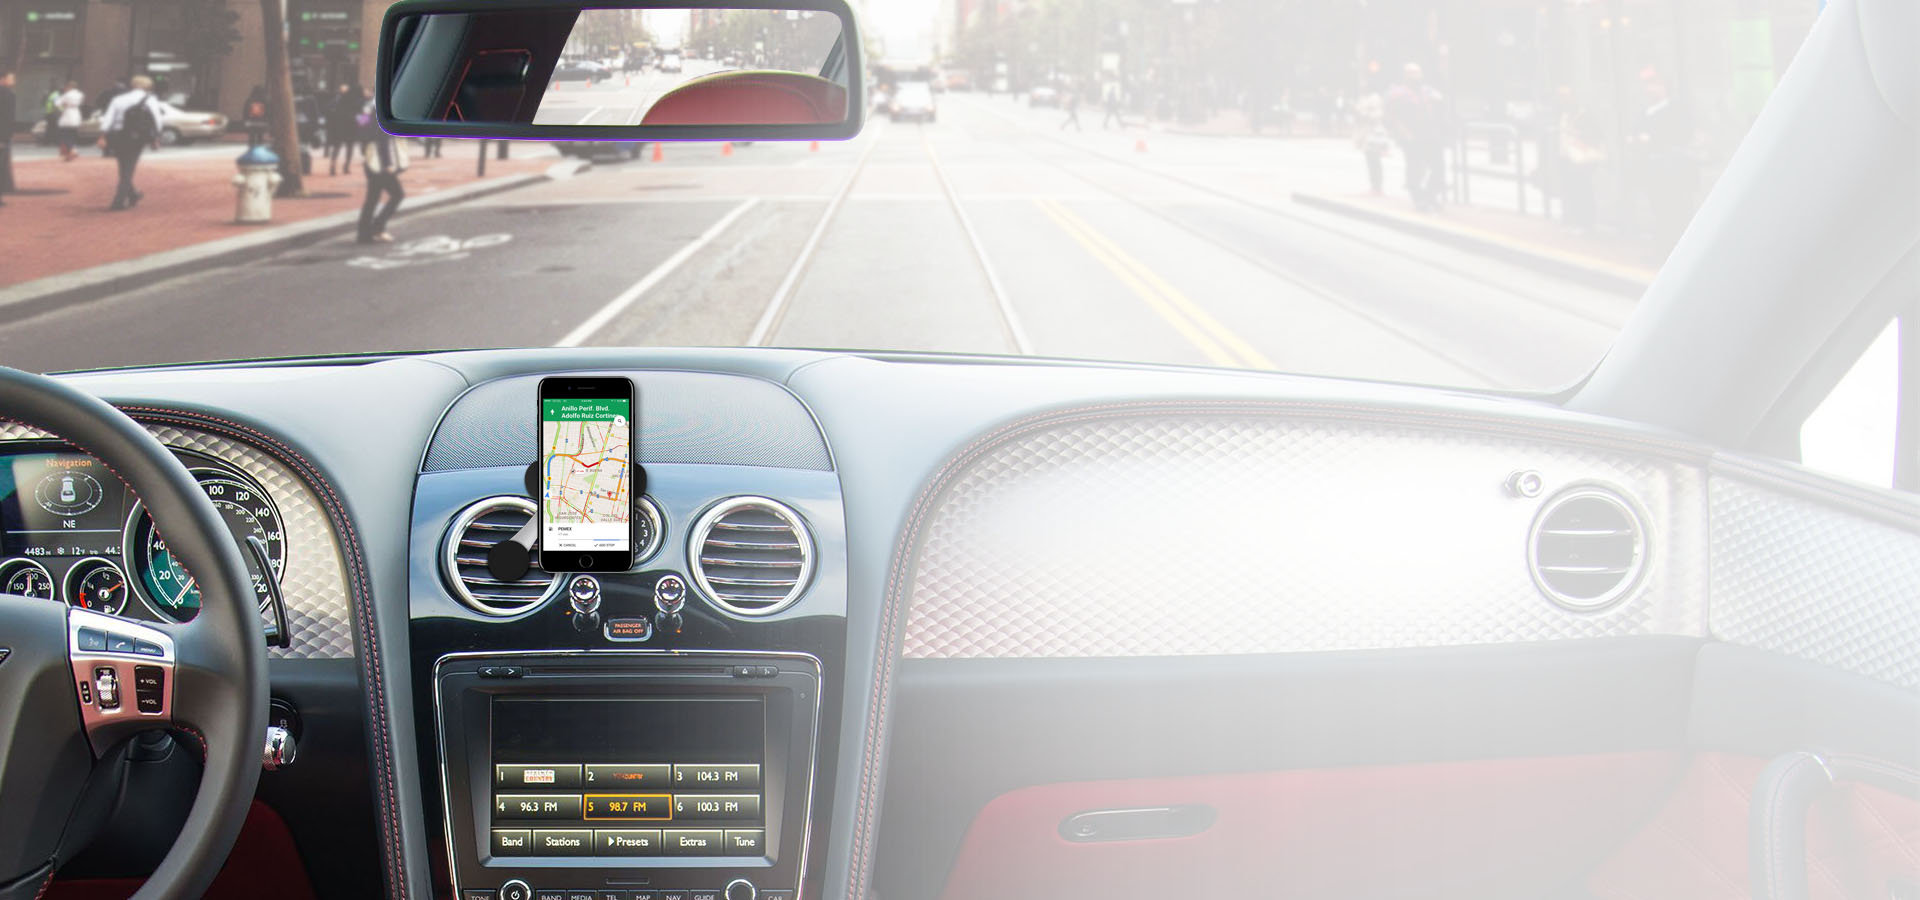 MICRODIA Smart 360 Car Mount - Protect Your Mobile from Direct Airflow